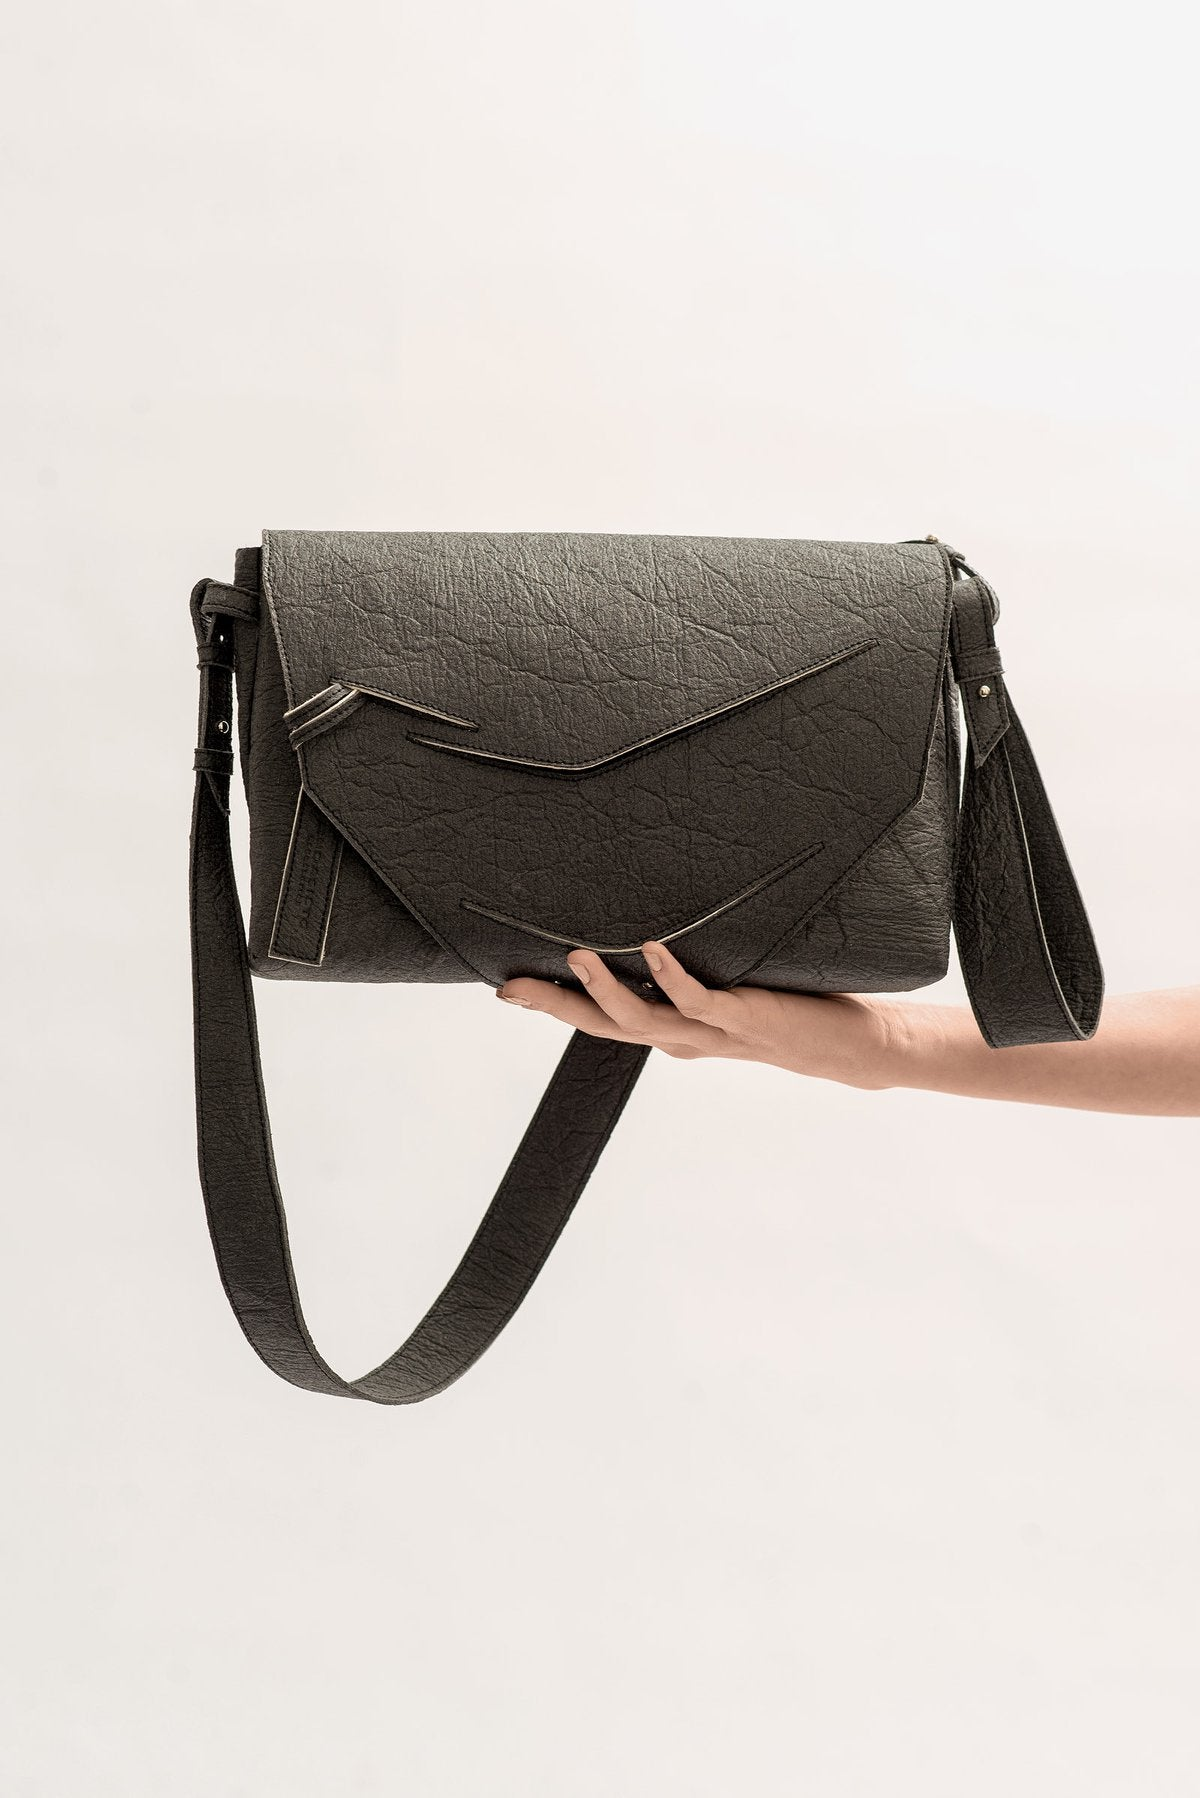 Boomerang Hybrid Bag - Alternative Charcoal